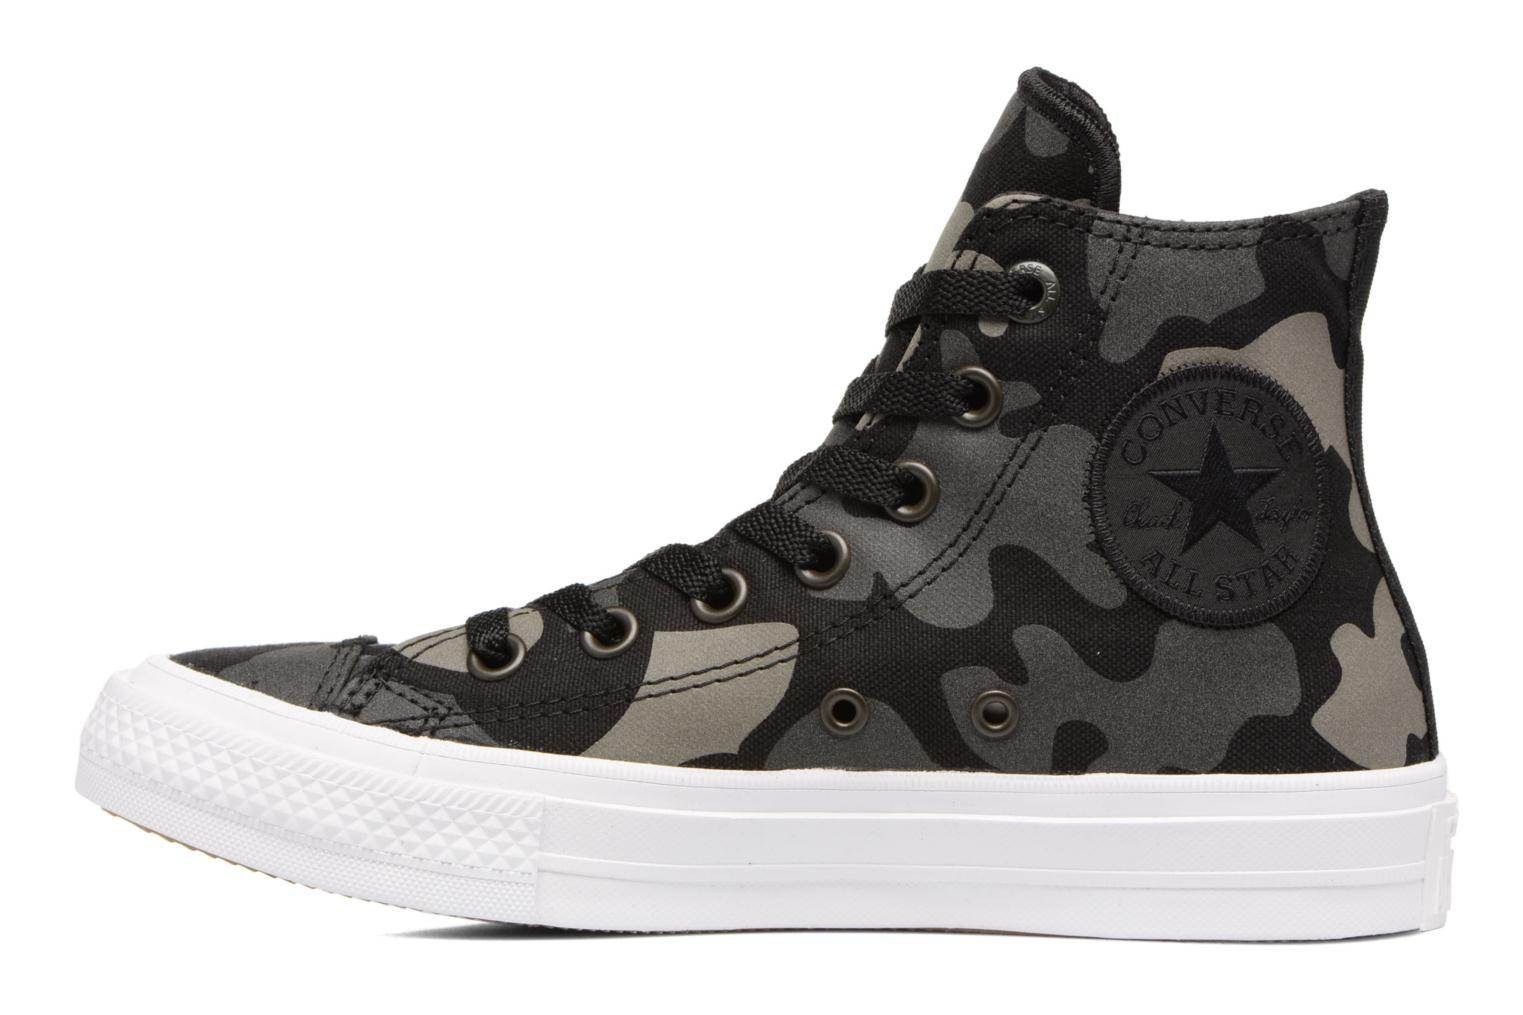 Chuck Taylor All Star II Hi W Charcoal/Black/White